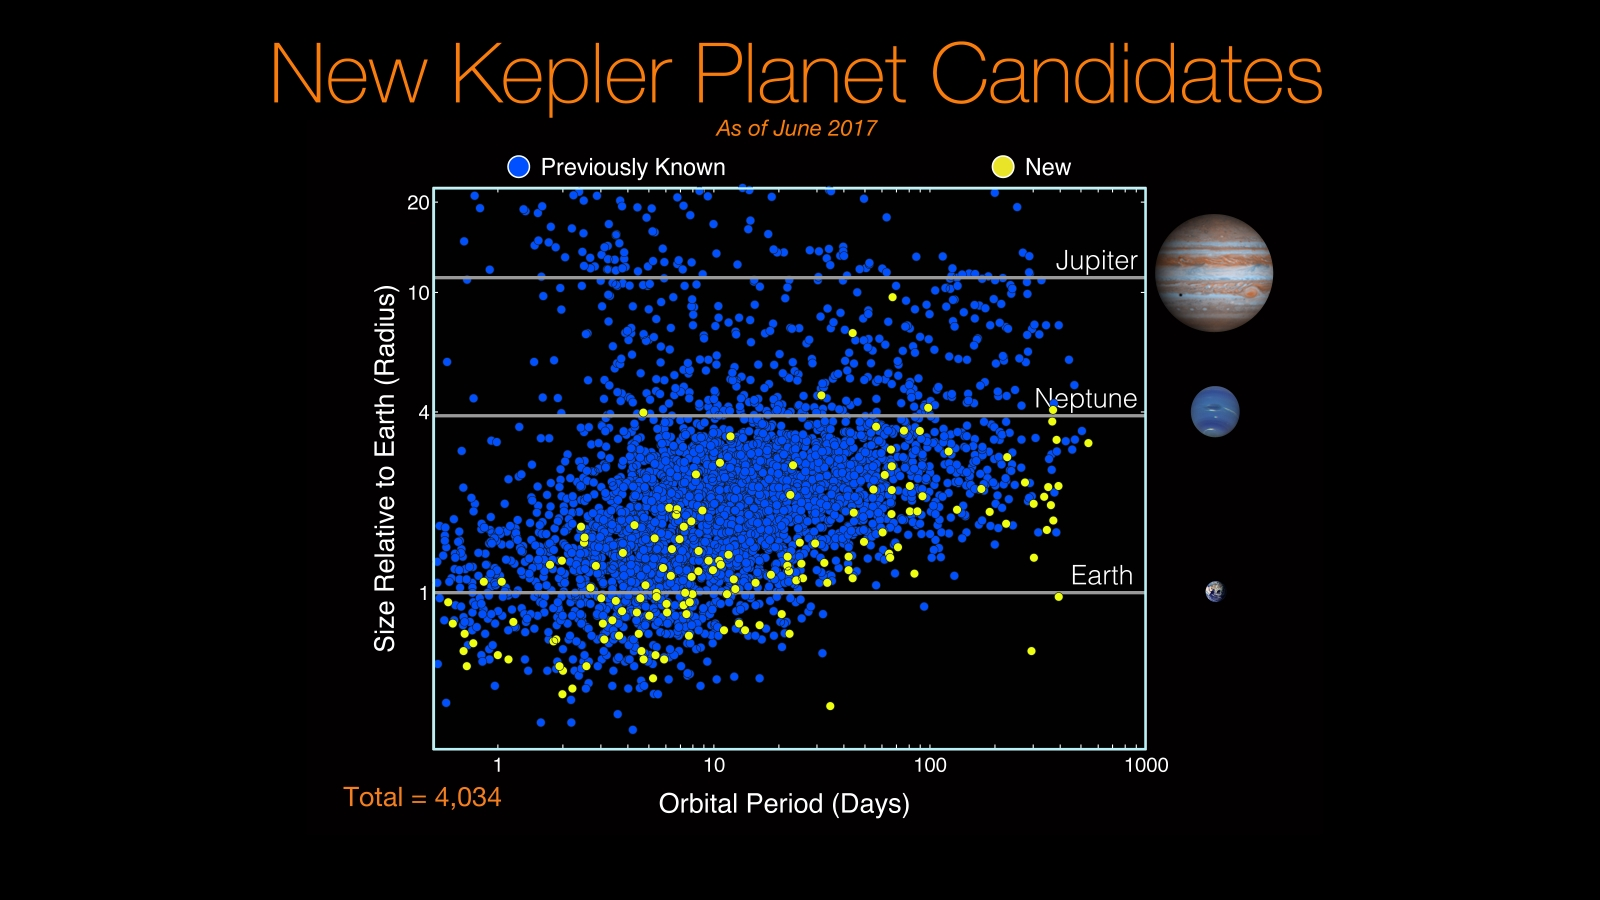 New Kepler Planet Candidates as of June 2017